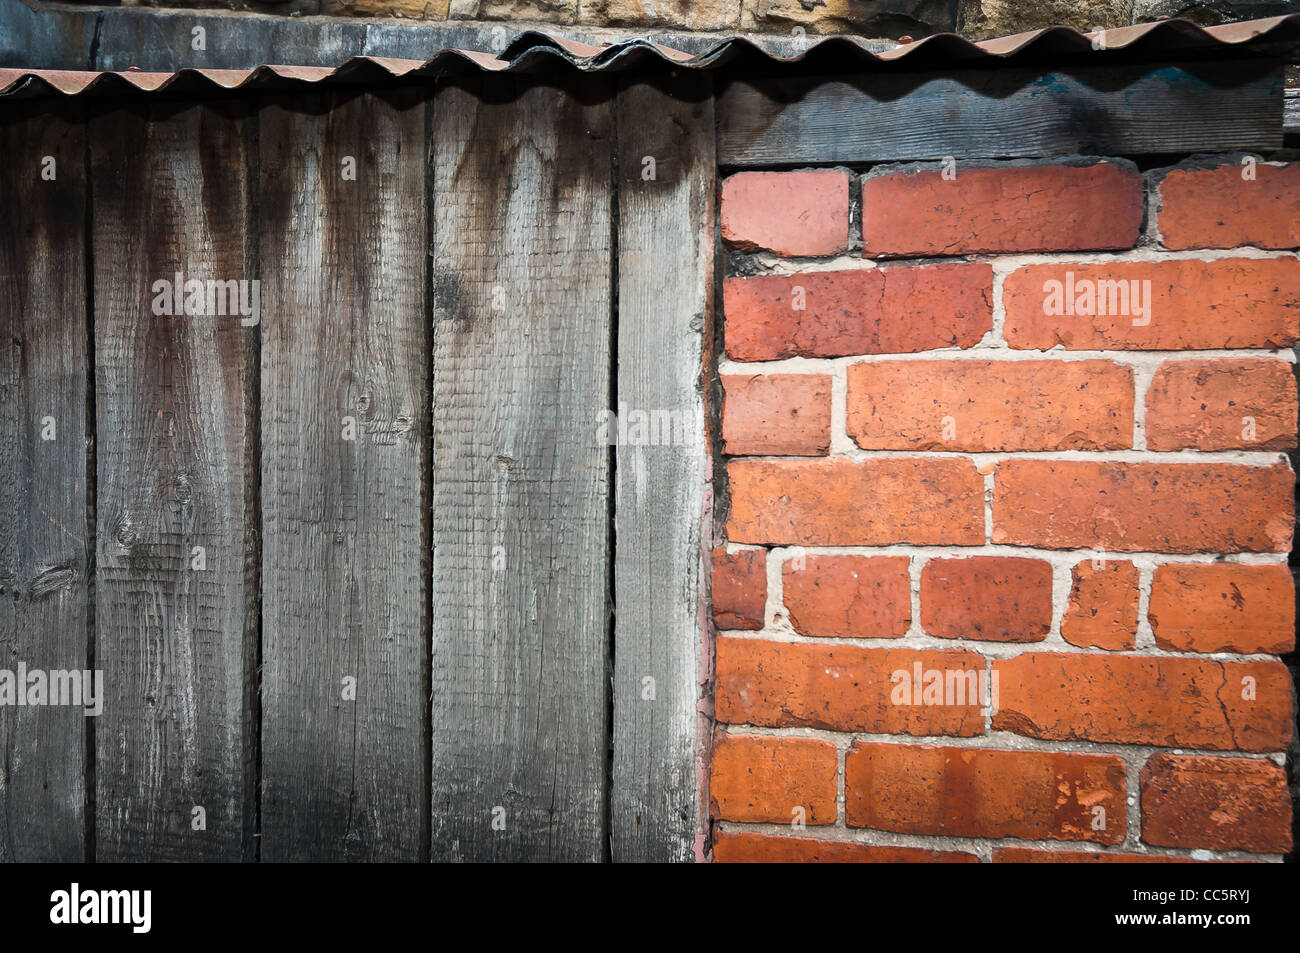 Brick Lintel Stock Photos & Brick Lintel Stock Images - Alamy